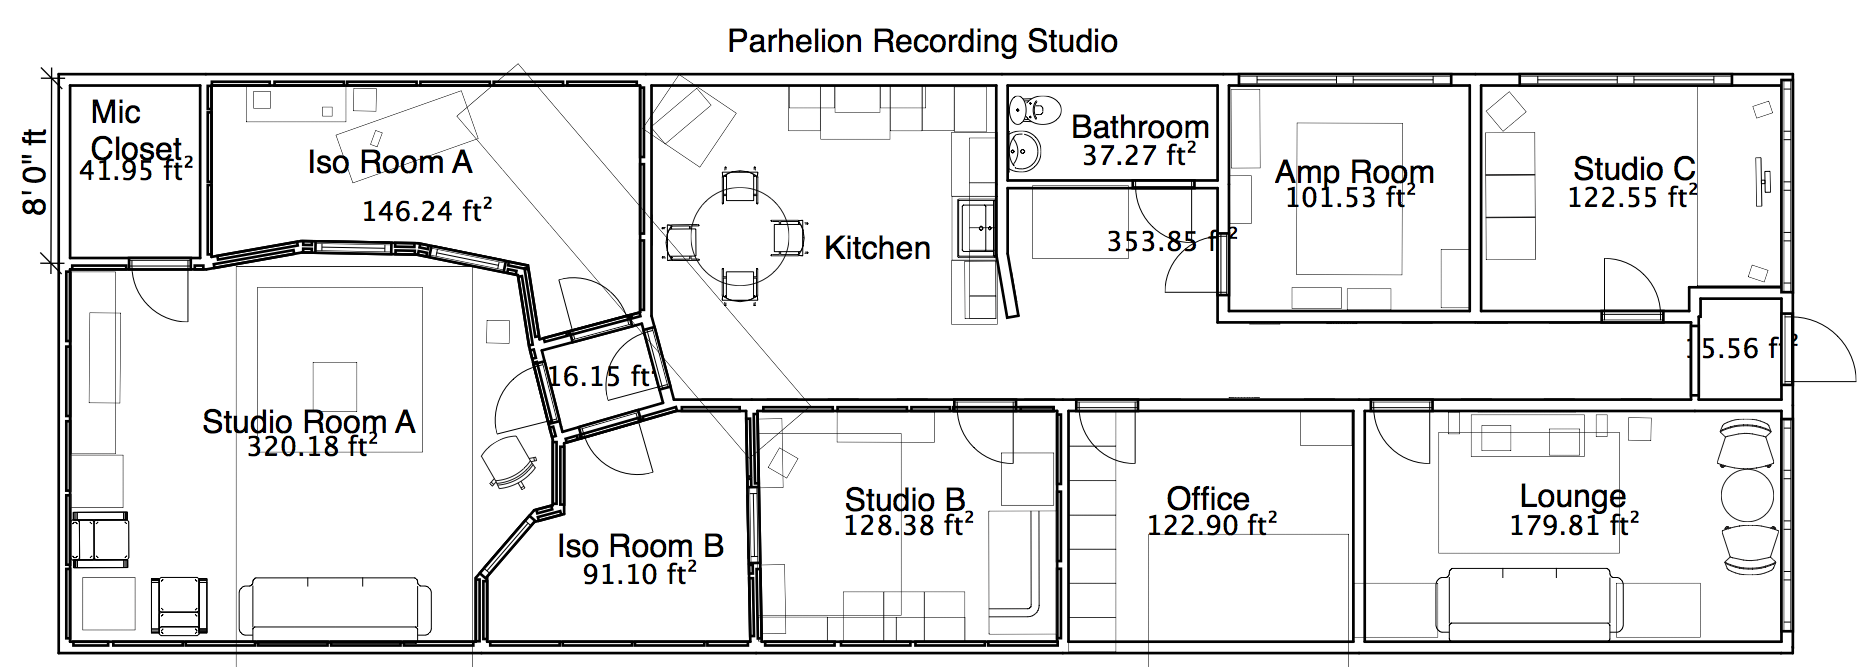 Studio layout parhelion recording studio atlanta latest news ccuart Gallery